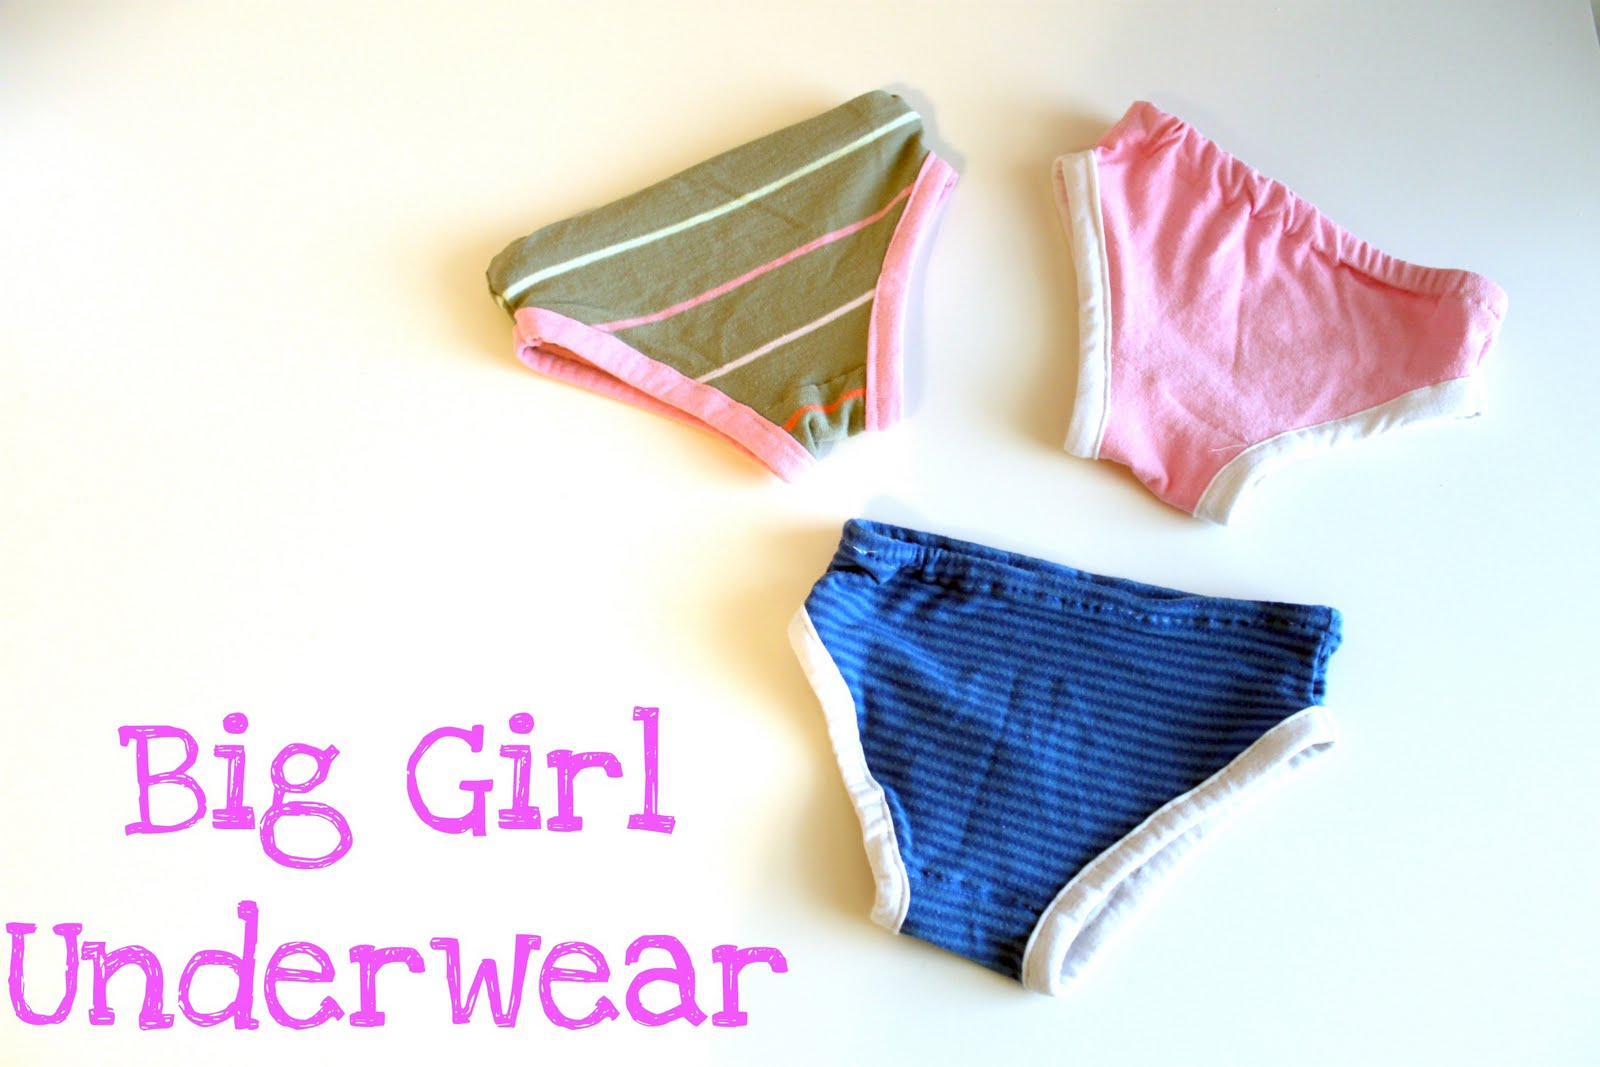 Toddler Girls (2T-5T) Underwear for girls at Macy's comes in all styles & sizes. Shop popular girls Toddler Girls (2T-5T) panties & underwear. Free shipping: Macy's Star Rewards Members!